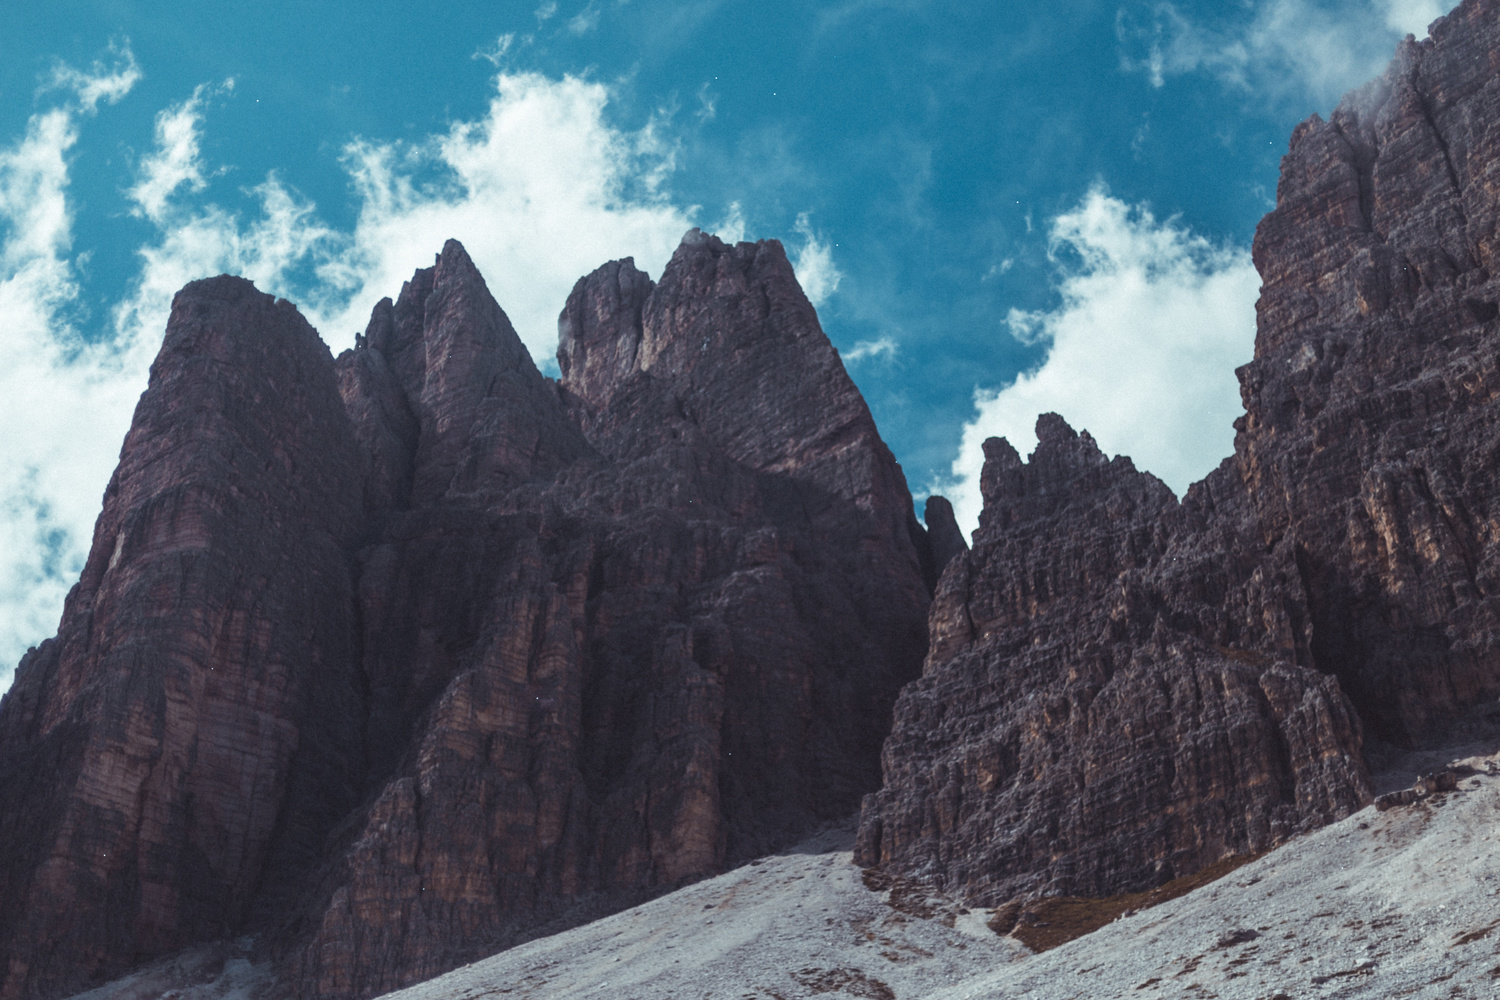 The Dolomites #2 by Diogo Linhares